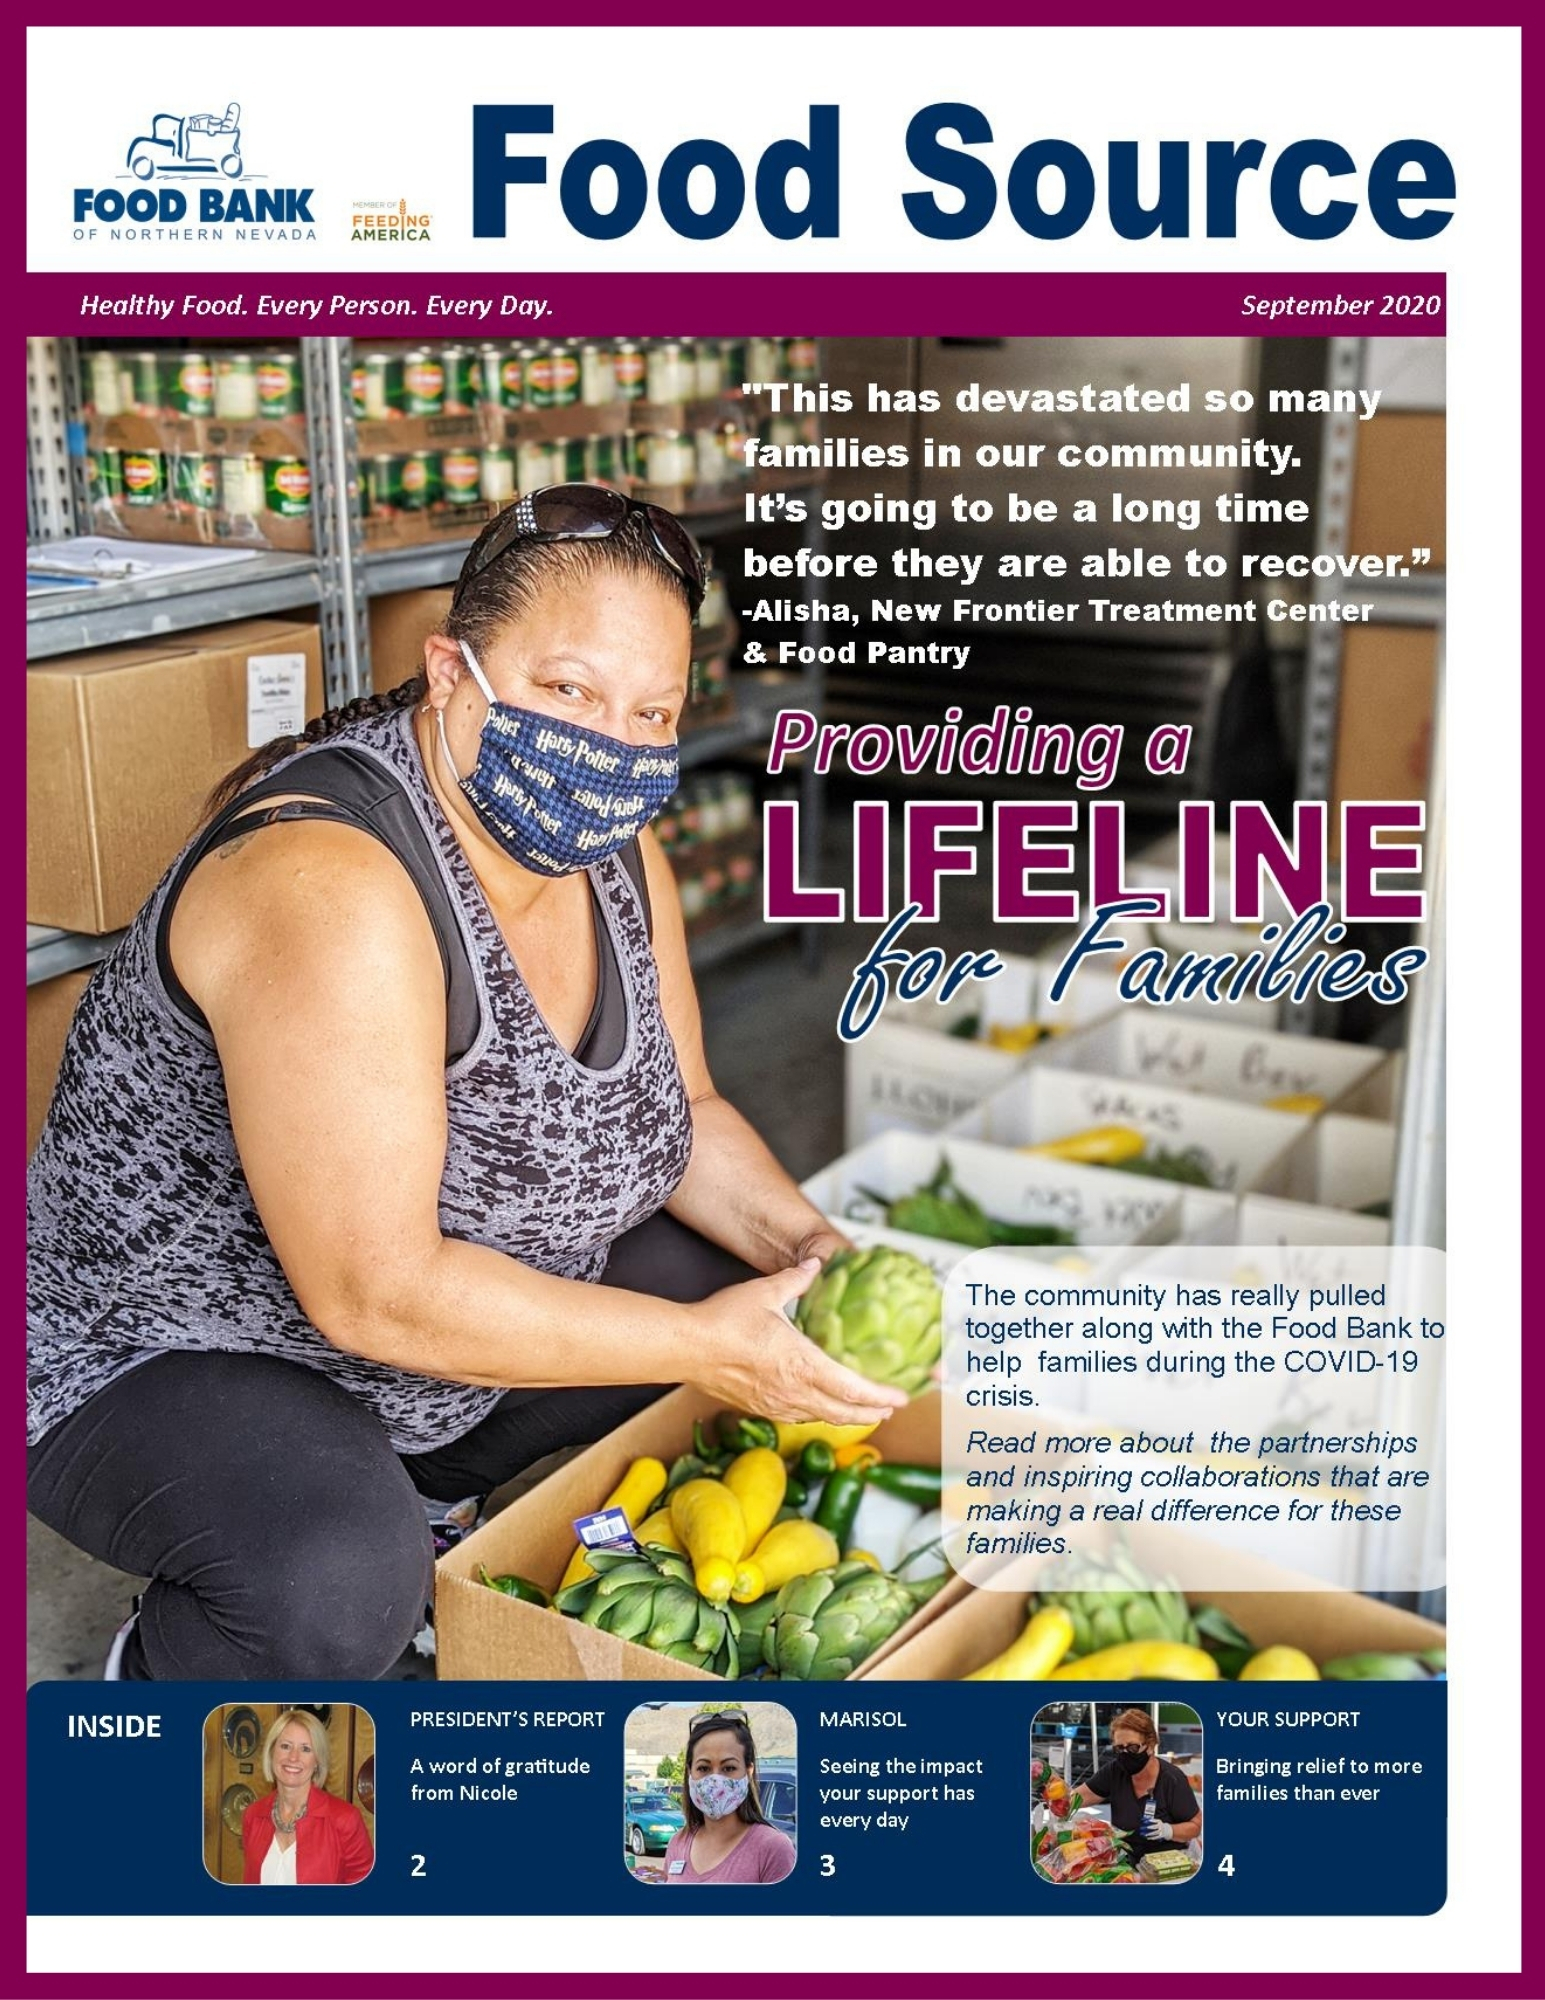 September 2020 Food Source Newsletter | Food Bank of Northern Nevada